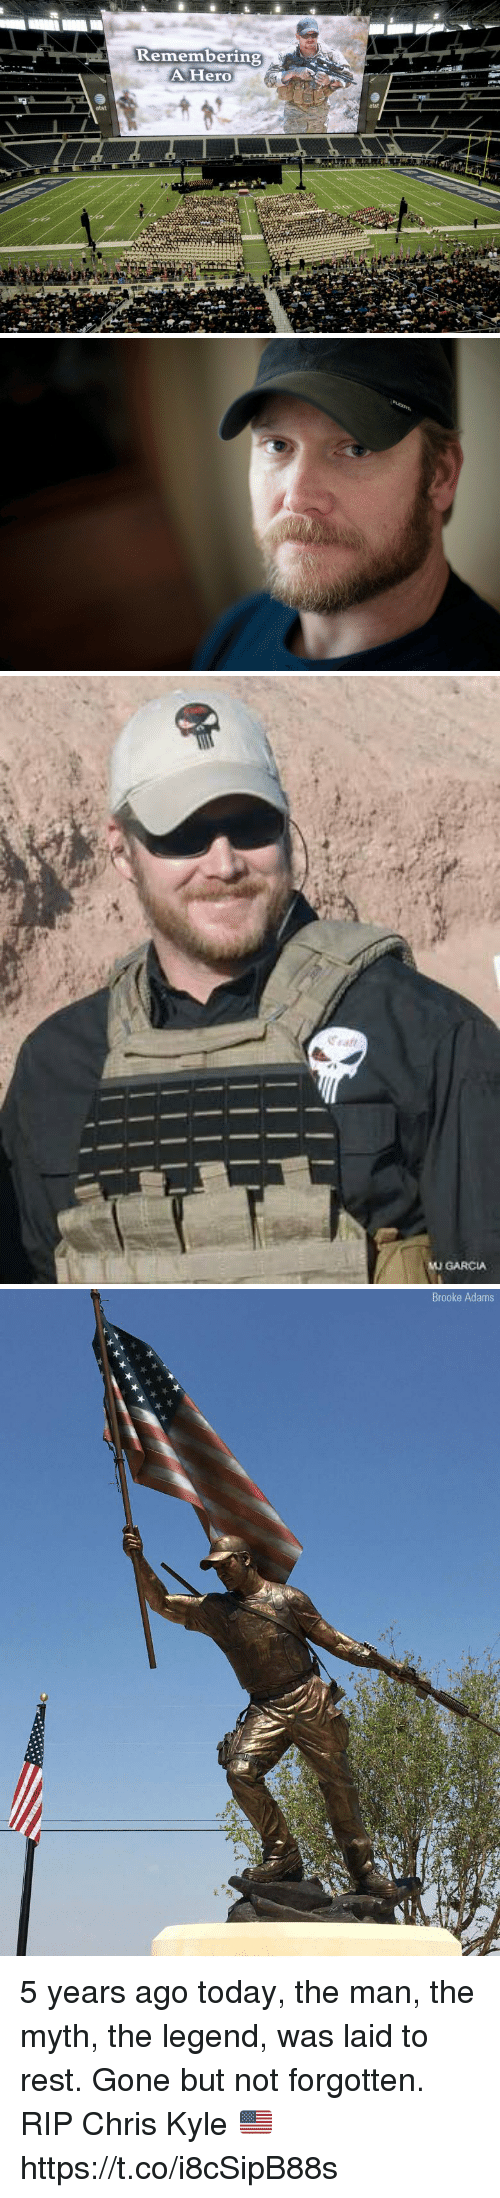 Atat: Kemembering  AHero  atat  atst   MU GARCIA   Brooke Adams 5 years ago today, the man, the myth, the legend, was laid to rest. Gone but not forgotten. RIP Chris Kyle 🇺🇸 https://t.co/i8cSipB88s